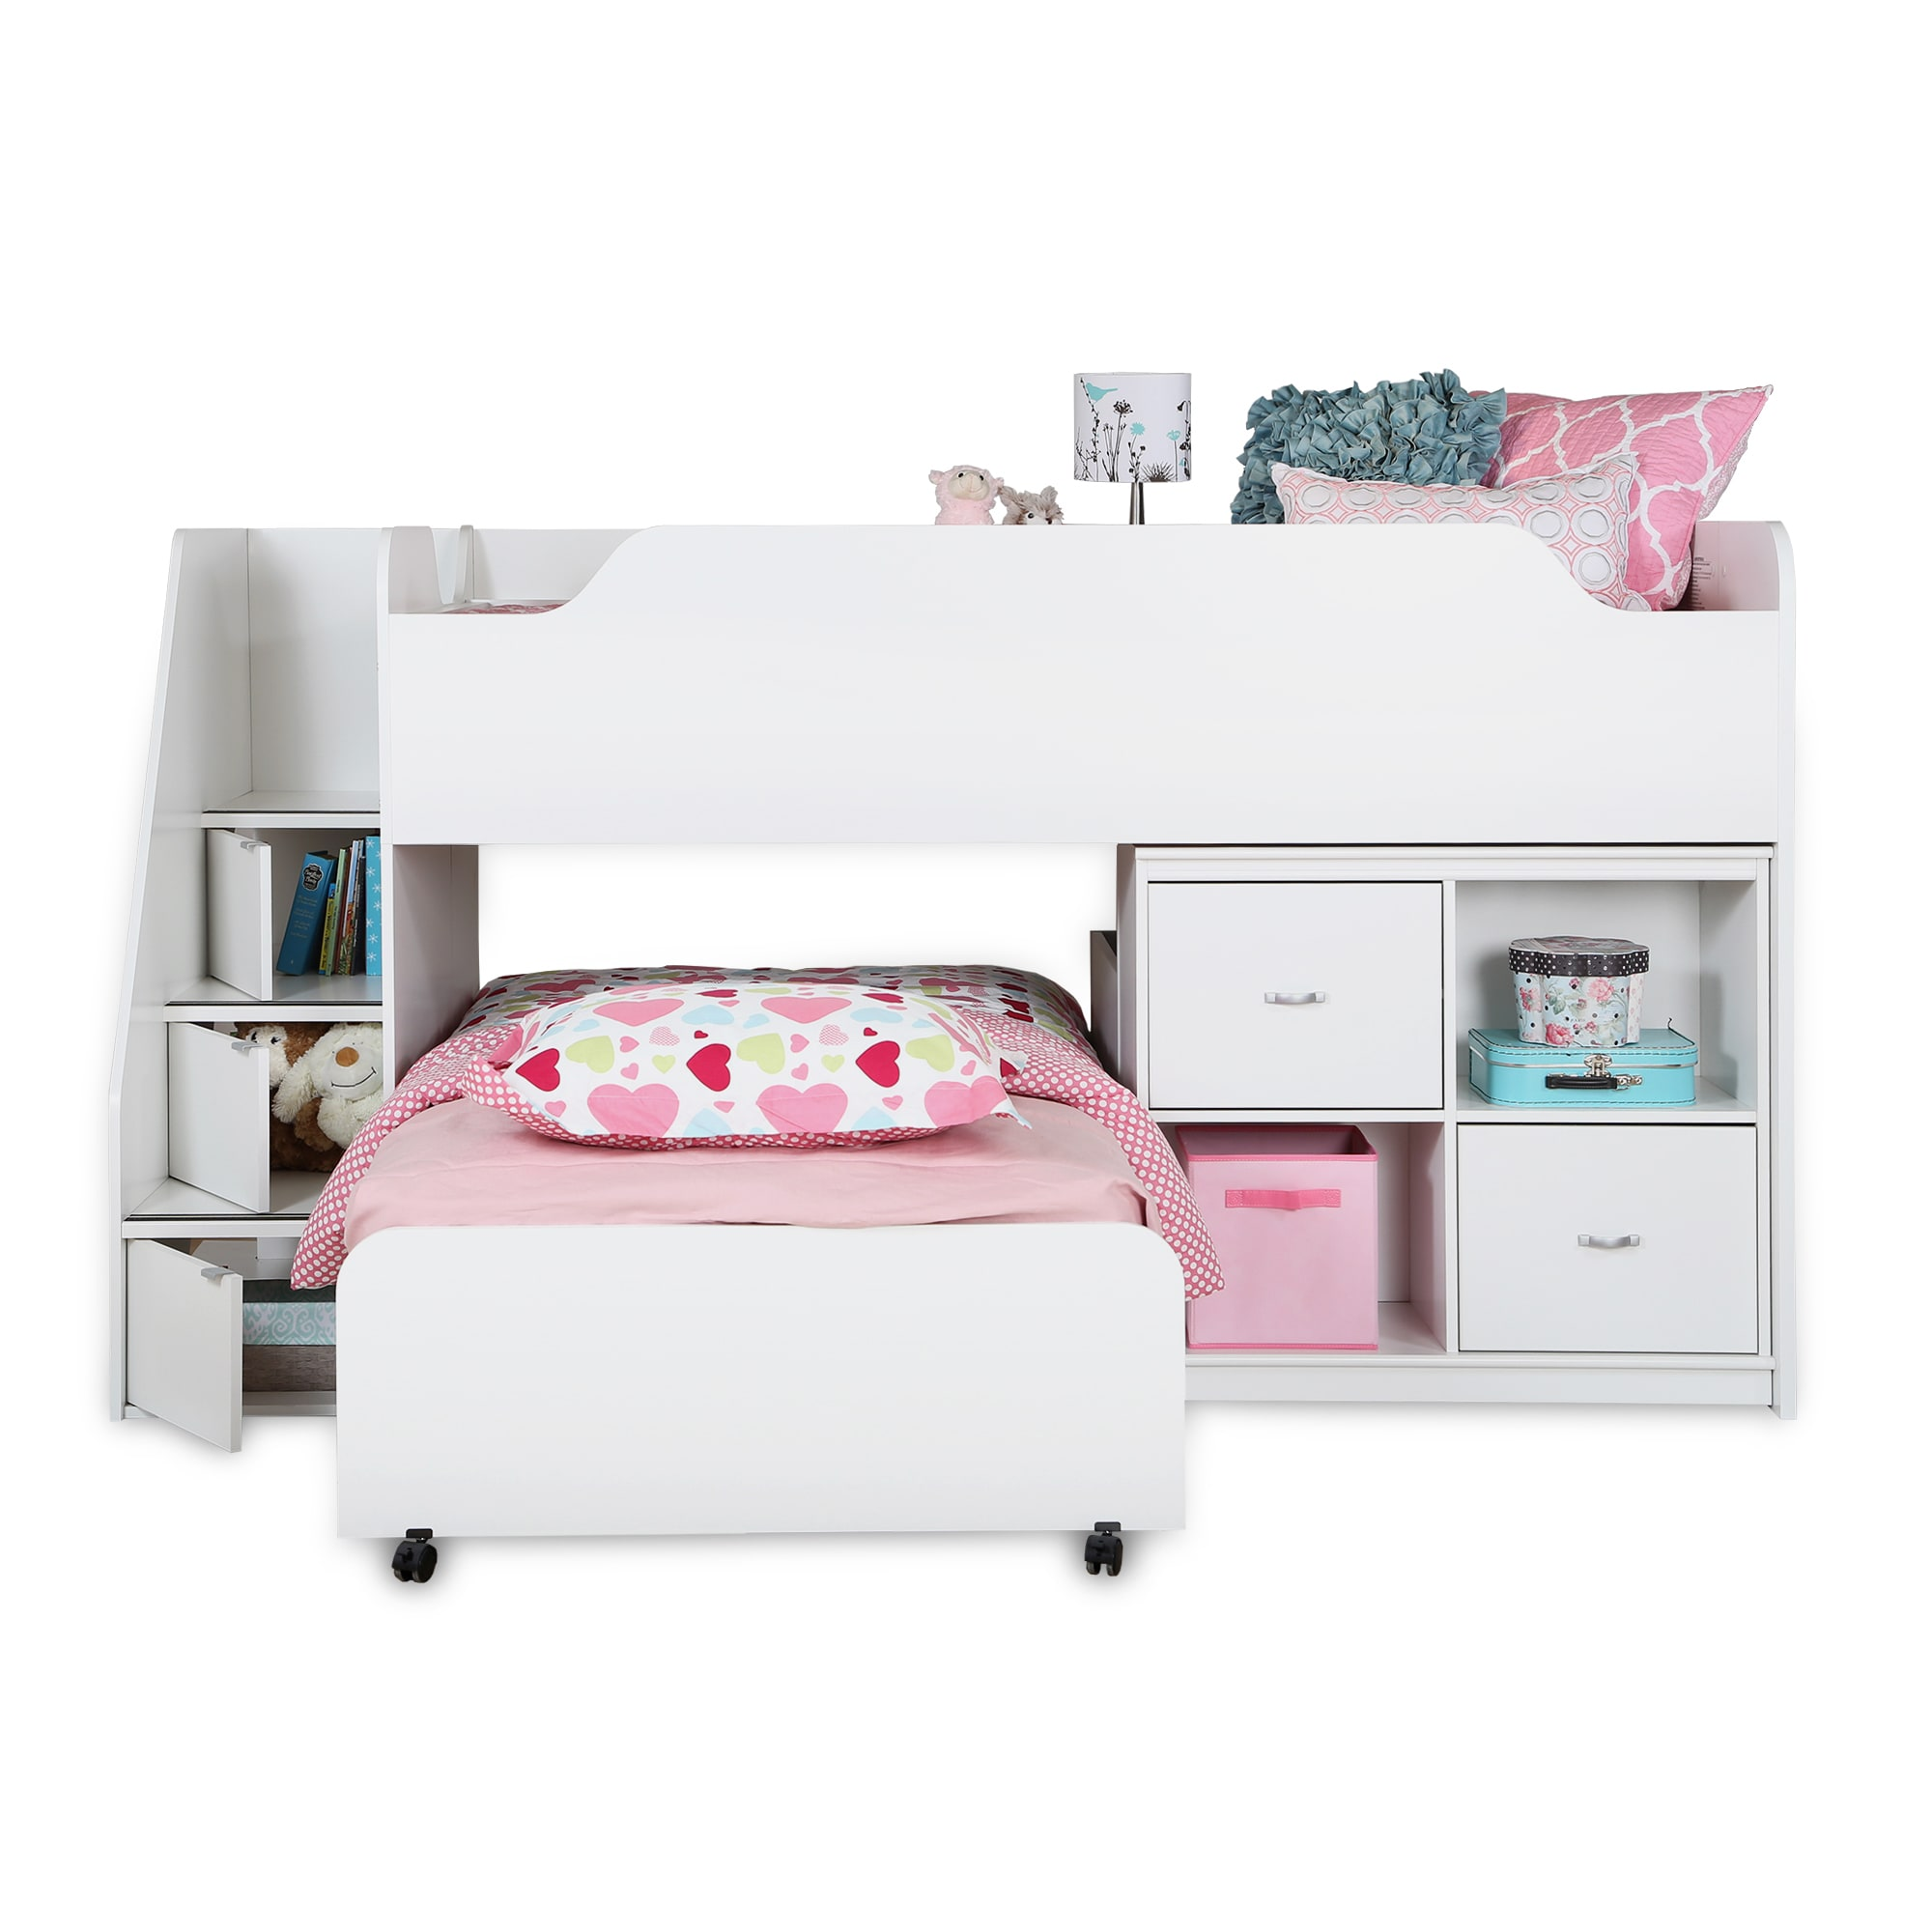 baby bed best furniture quality trundle wayfair reviews drawers pdx kids captain twin with